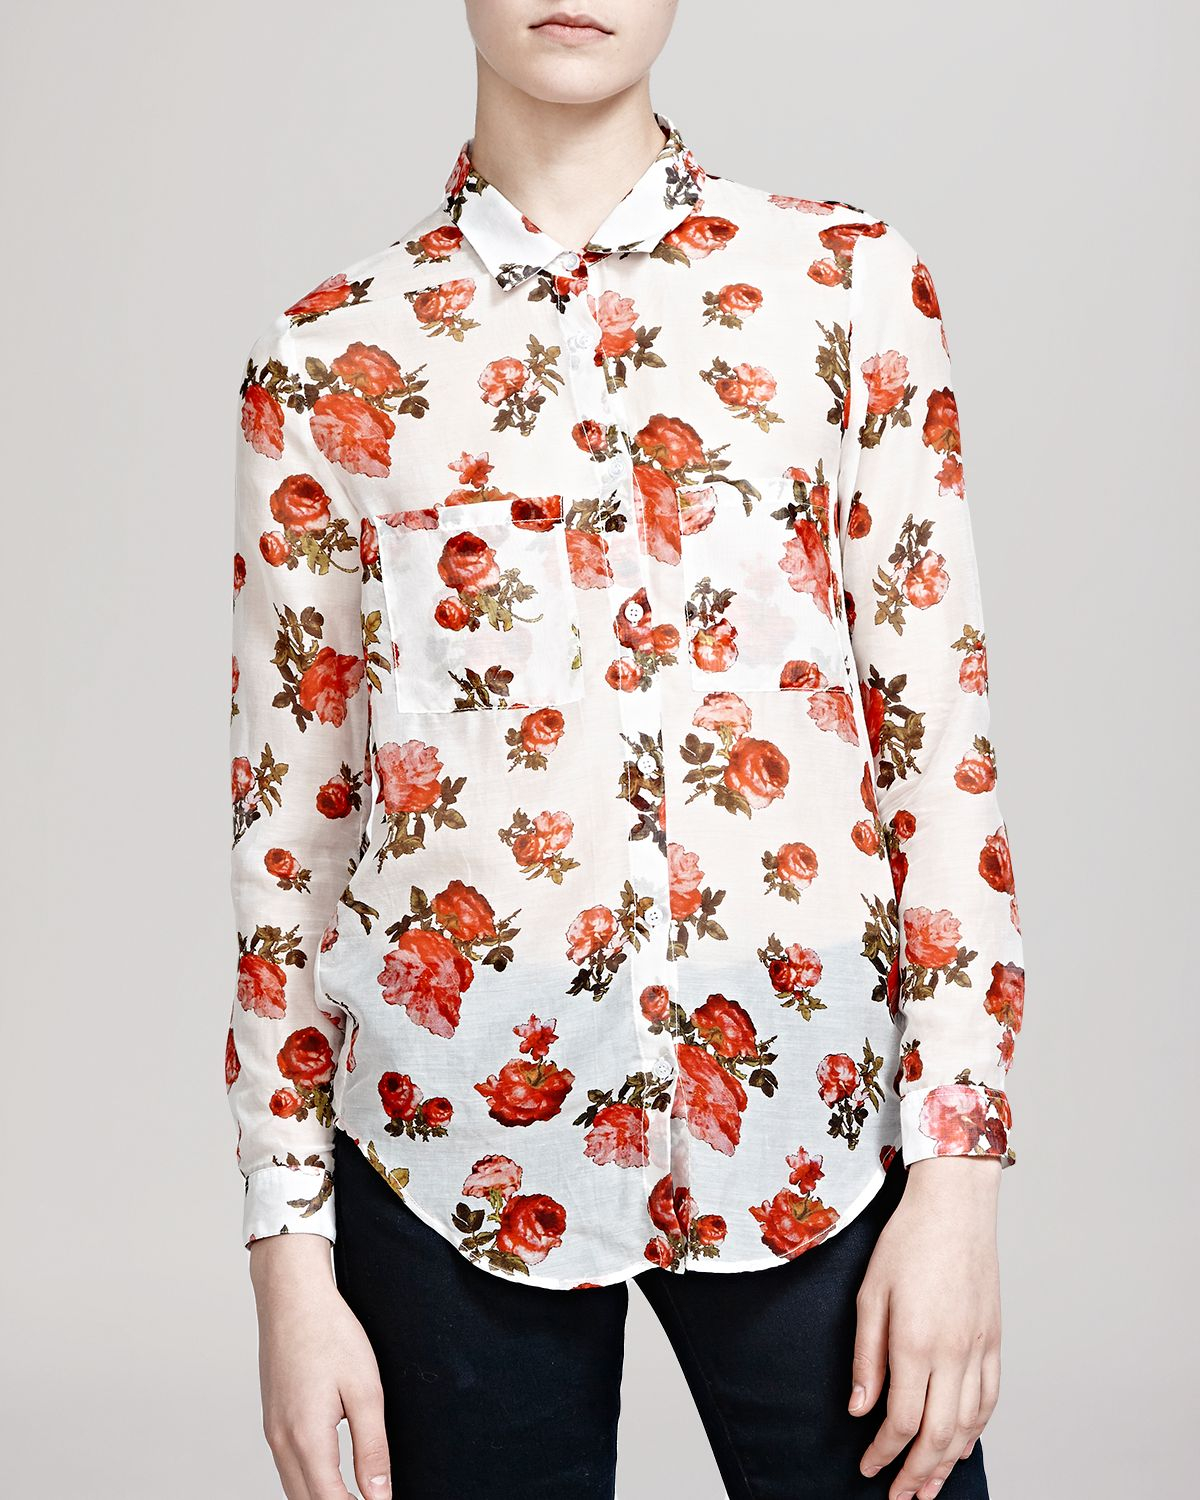 SHIRTS - Blouses The Kooples Best Place Online Clearance Great Deals Cheap Eastbay Cheapest Price jwUpLnVu